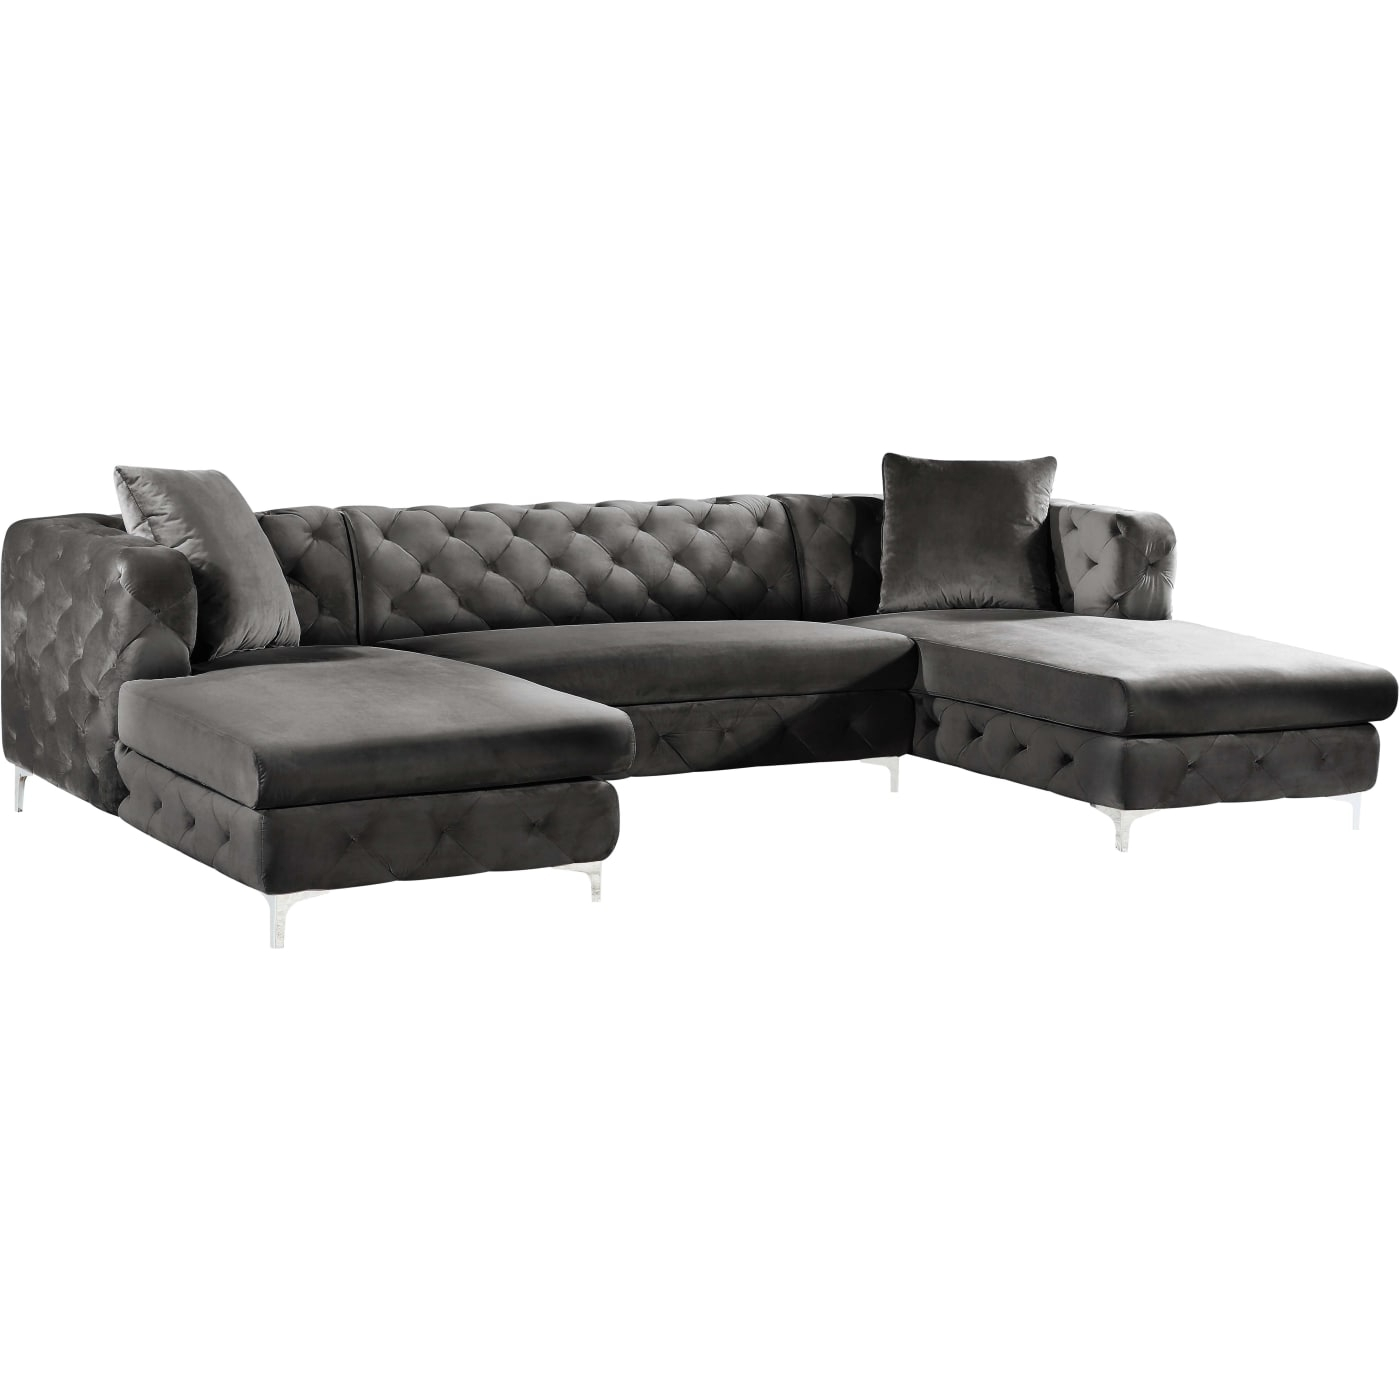 3 Piece Sectional Sofa With Chaise Reviews | Baci Living Room In Malbry Point 3 Piece Sectionals With Raf Chaise (Photo 23 of 30)